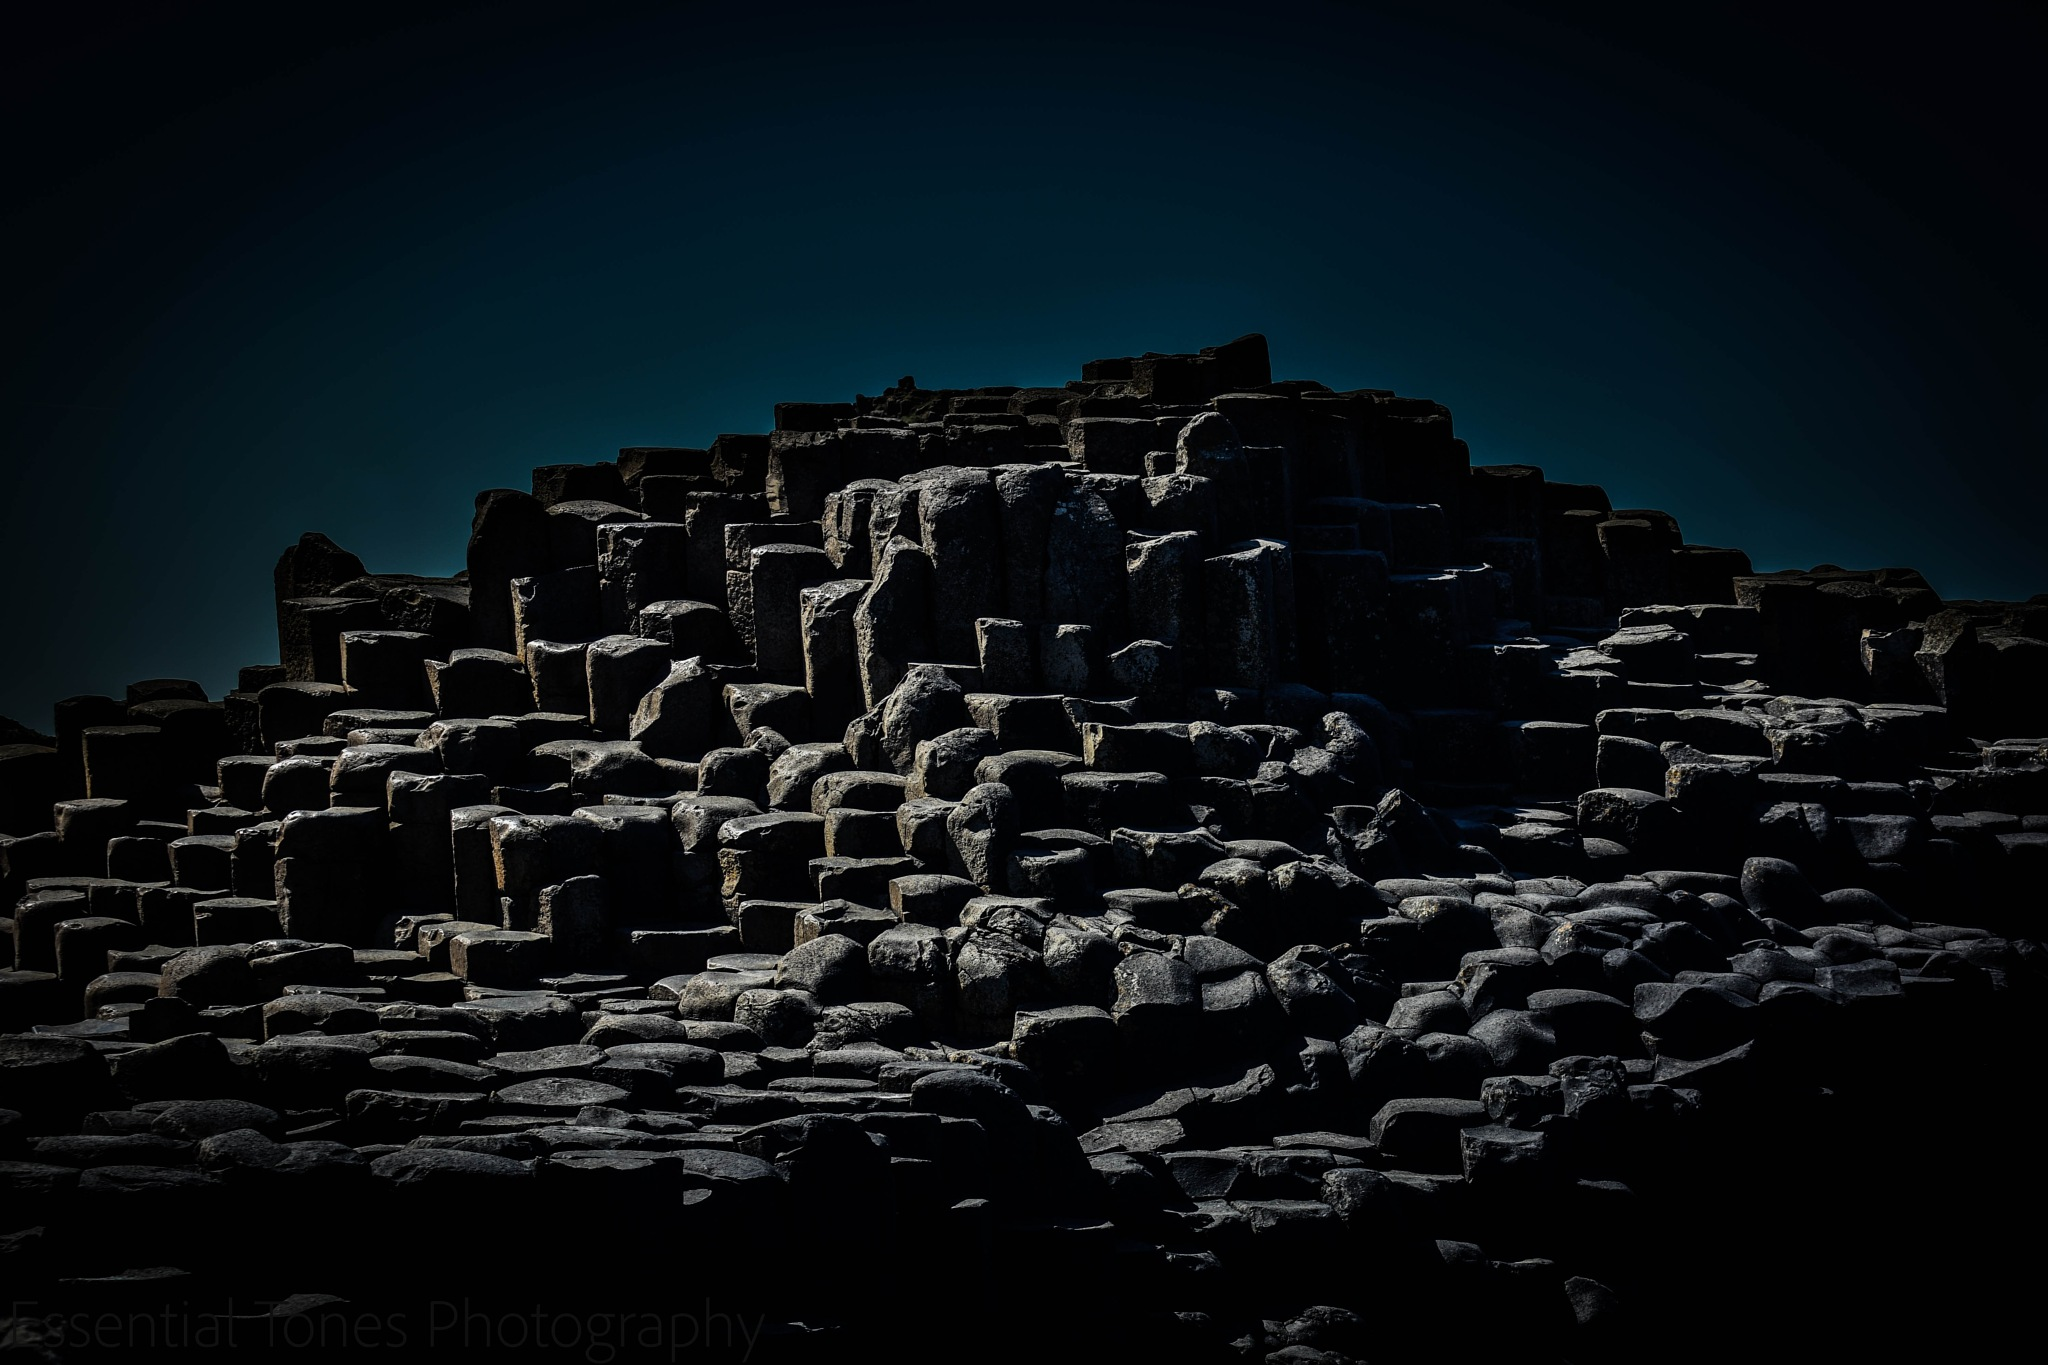 Giants Stones by essentialtonesphotography